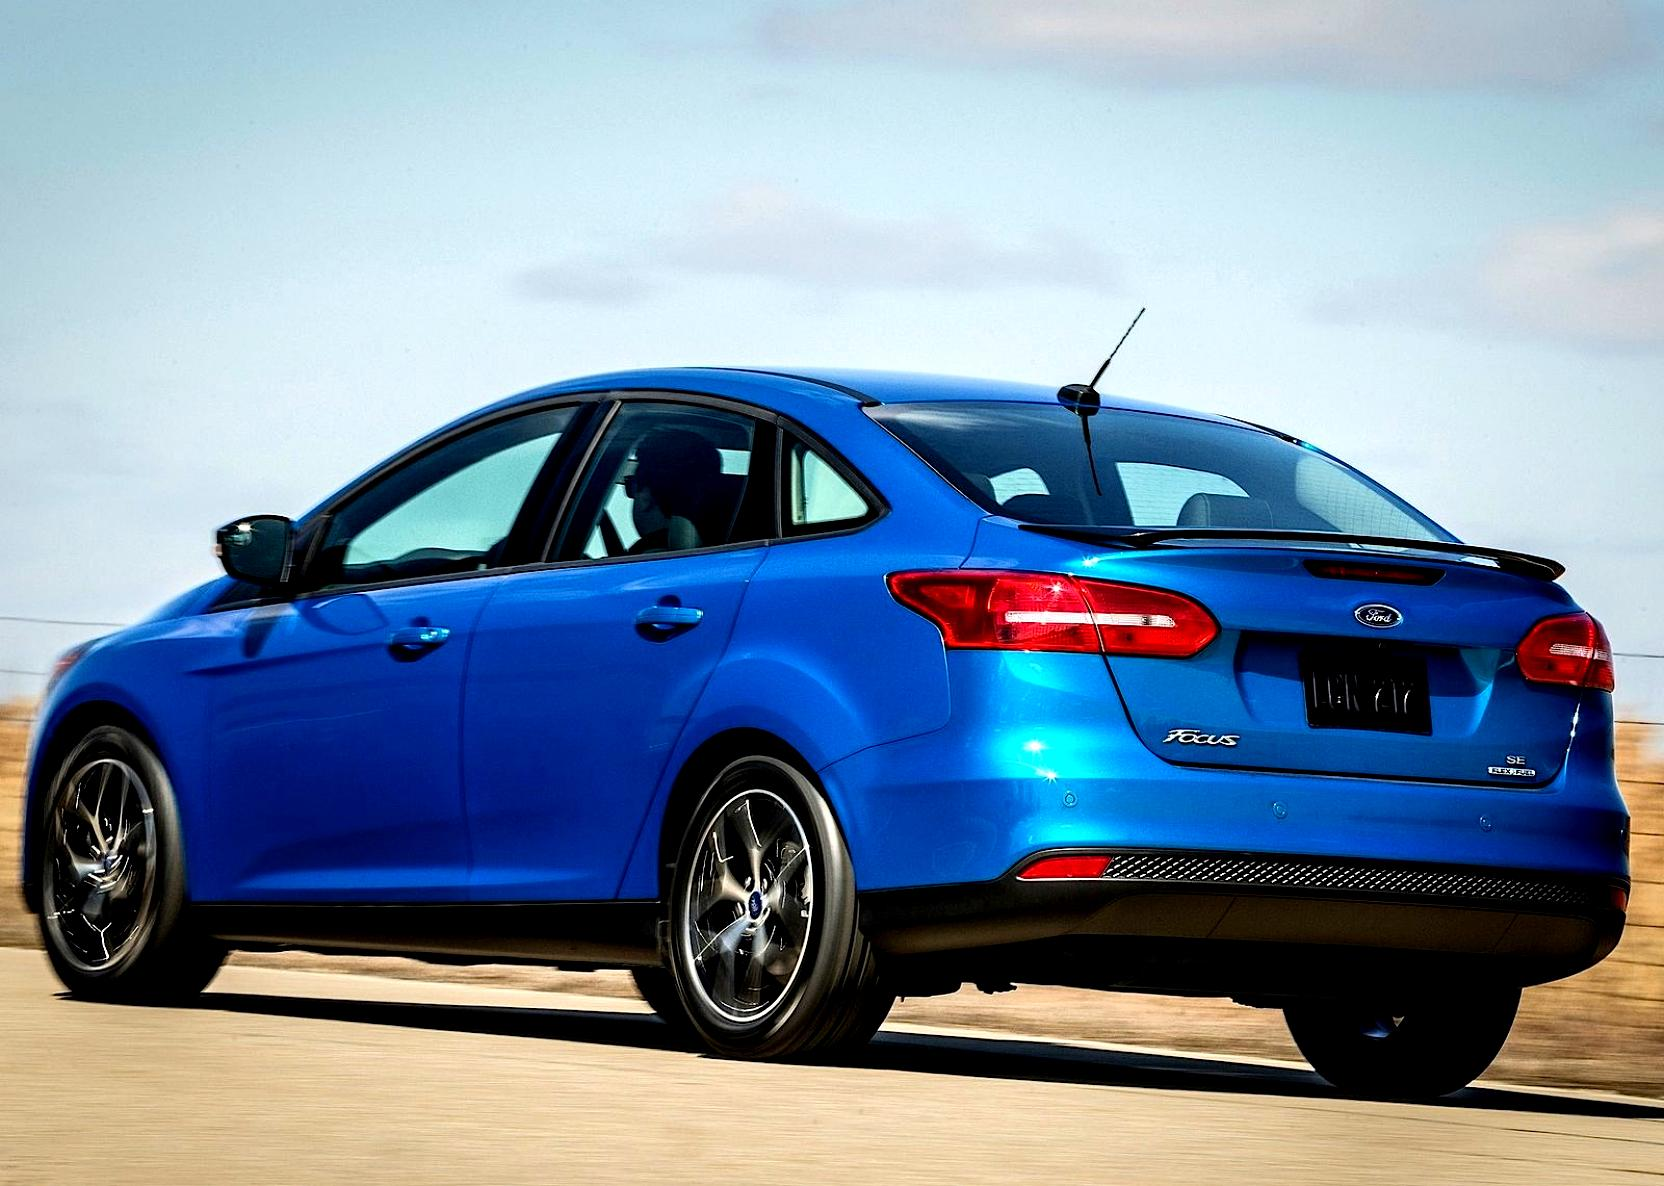 Ford Focus Sedan 2014 #28